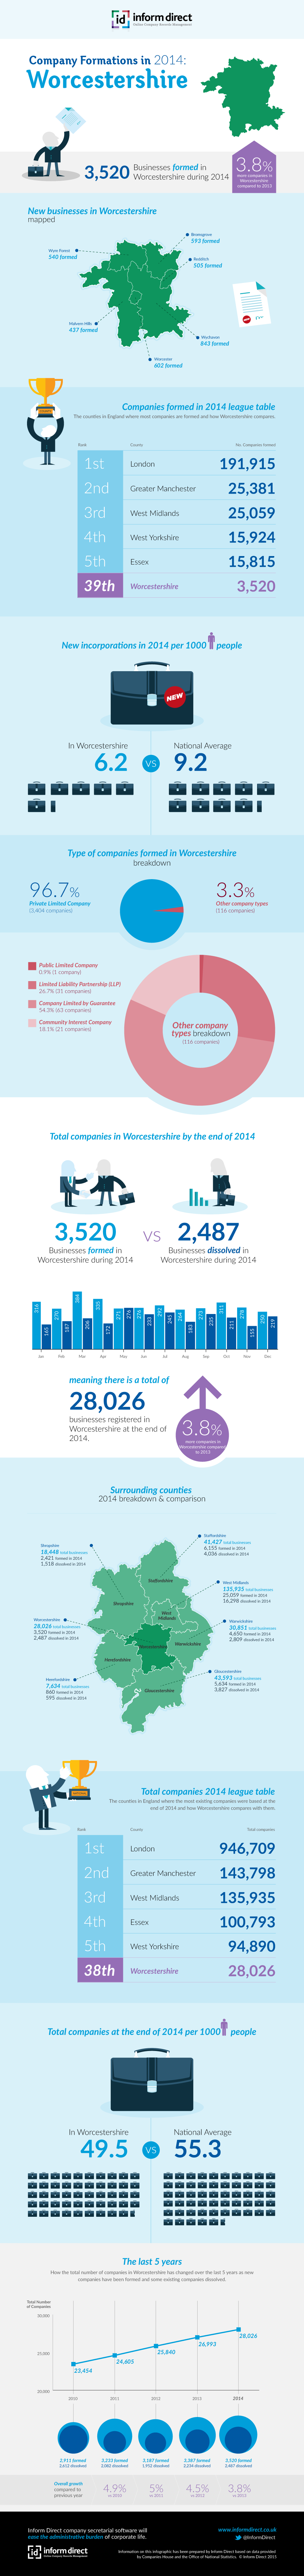 Inform Direct - Company Formations in Worcestershire 2014 Infographic